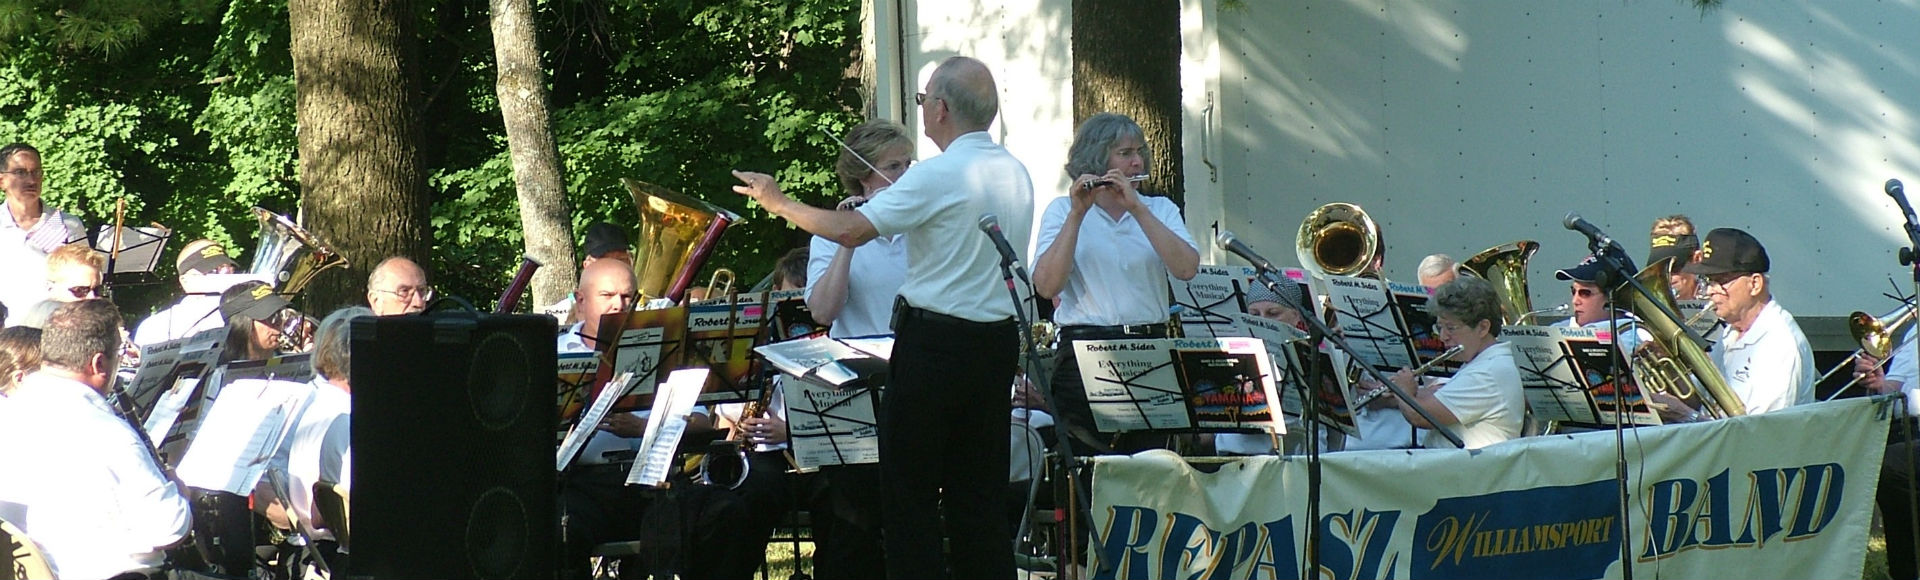 Outdoor Concerts throughout the Susquehanna Valley